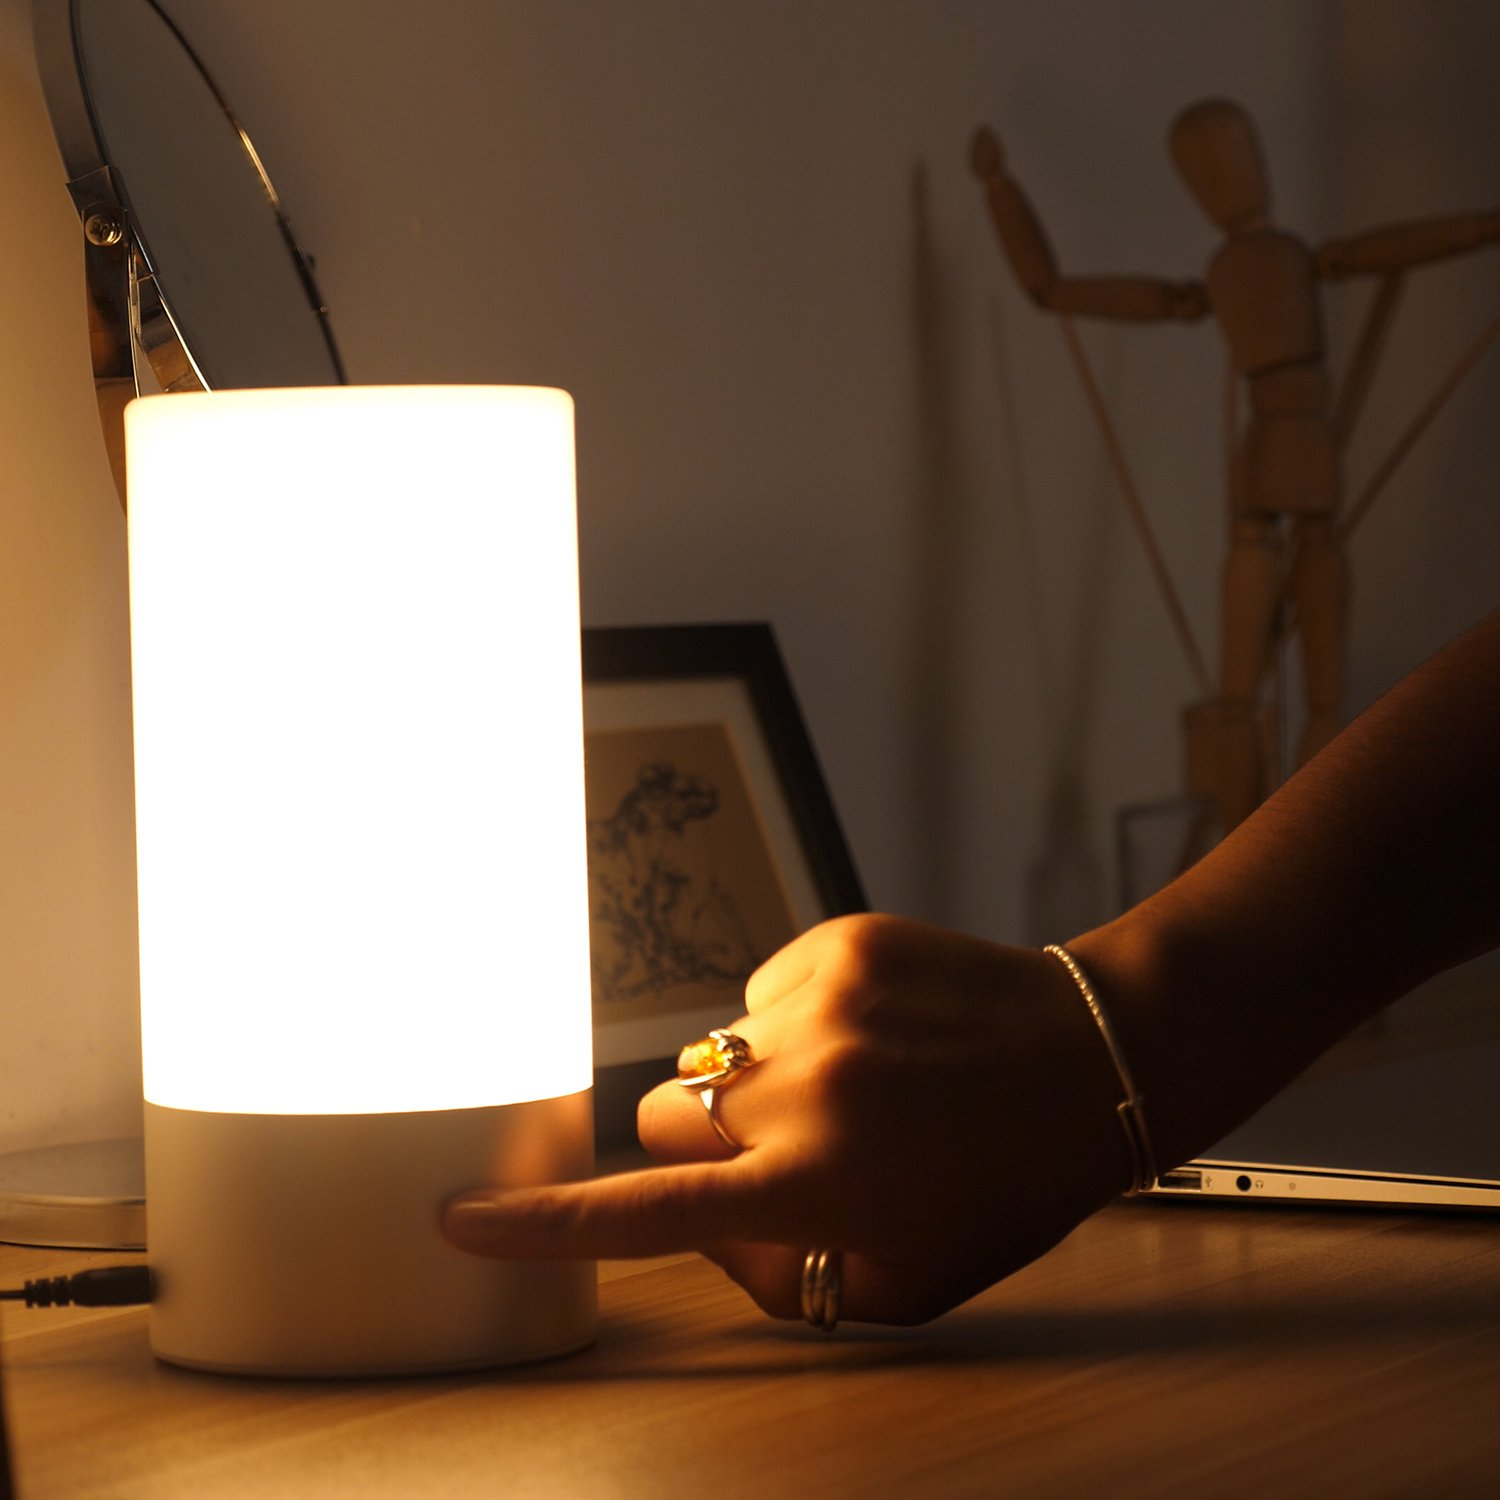 AUKEY Table Lamp, Touch Sensor Bedside Lamps + Dimmable Warm White Light & Color Changing RGB for Bedrooms by AUKEY (Image #9)